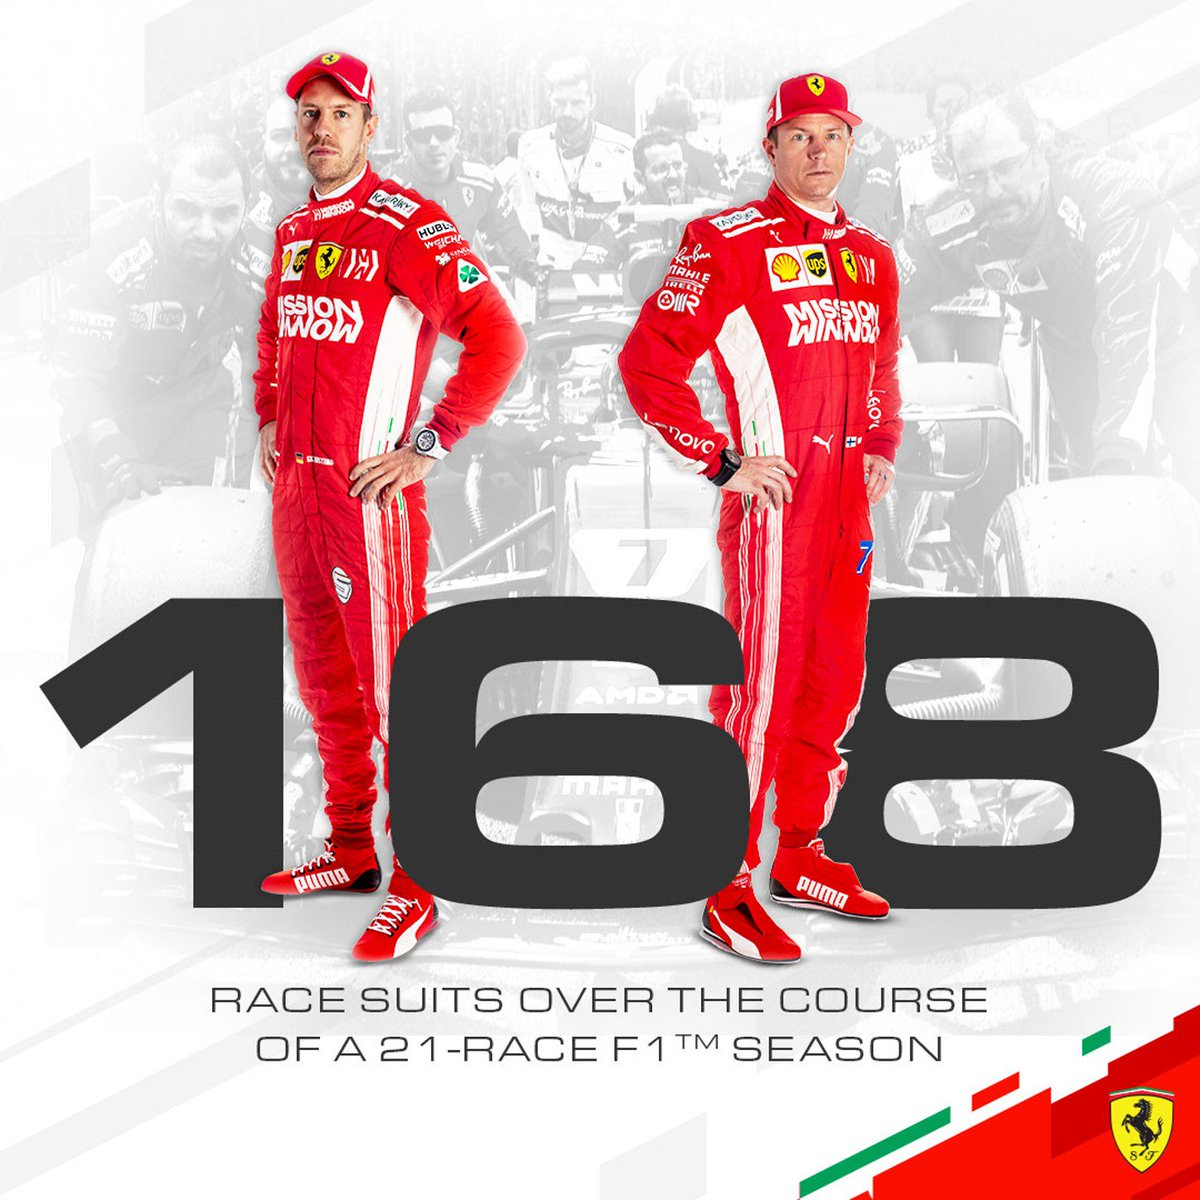 Scuderia Ferrari On Twitter Didyouknow Over The Course Of A 21 Race F1 Season Seb5 And Kimi7 Used 168 Race Suits That S Enough To Clothe The Trackside Team Twice Over Forzaferrari Https T Co Mhtjsggcja